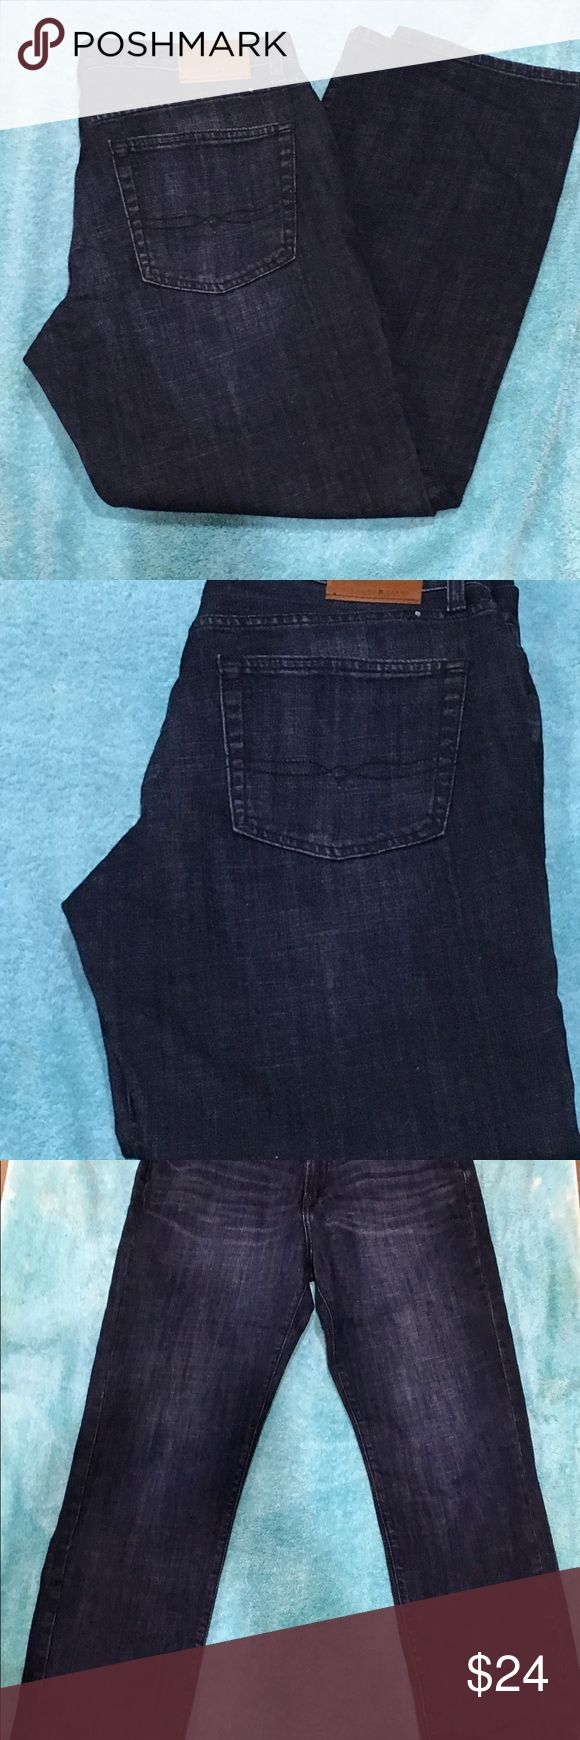 """Men's Lucky Brand Jeans-34/30-Straight-MINT Mens Lucky Brand Jeans in Navy Blue worn one time in Mint -Like New Condition. Style is Original/Straight , 34/30 with zip fly and classic """"Lucky You"""" written in the fly.  These jeans were purchased at the Lucky Outlet for $105 this past fall. They are too small on my husband. Do not hesitate to contact me for additional pictures or measurements. I will gladly bundle items for shipping so feel free to check out my other great items. Thank you for…"""